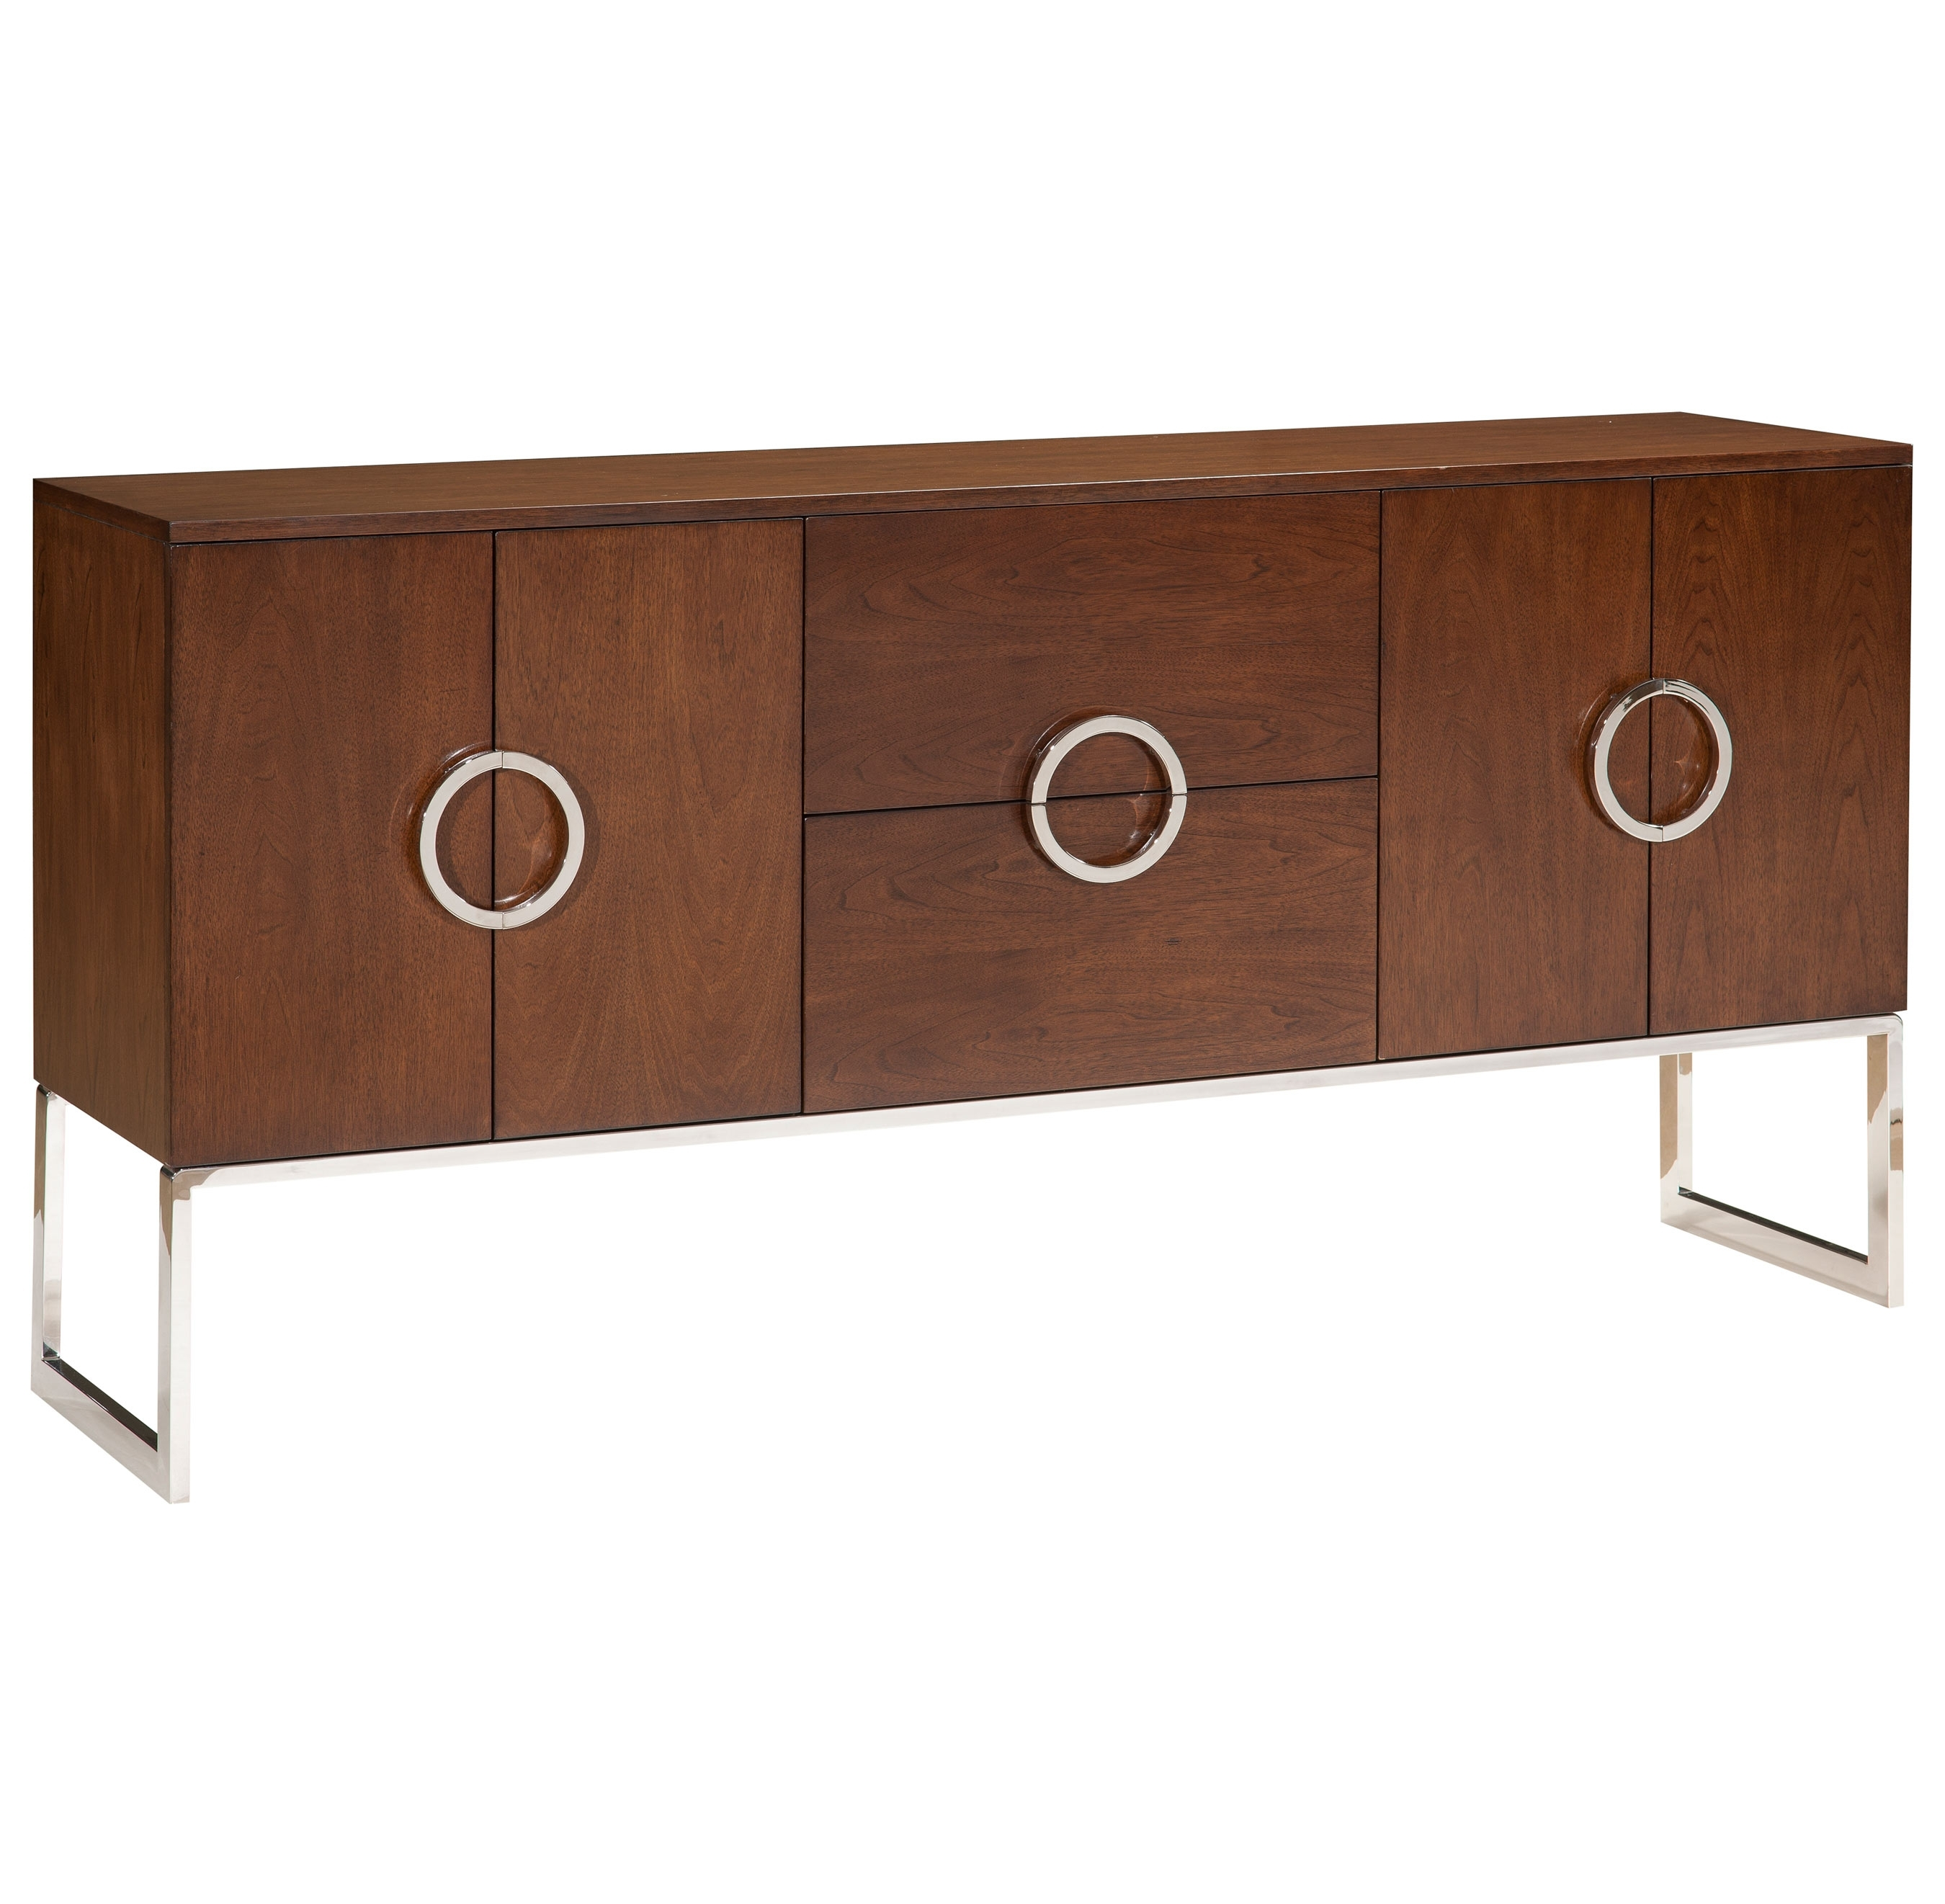 Buffets & Sideboards | Kathy Kuo Home Pertaining To Best And Newest 4 Door 4 Drawer Metal Inserts Sideboards (#3 of 20)